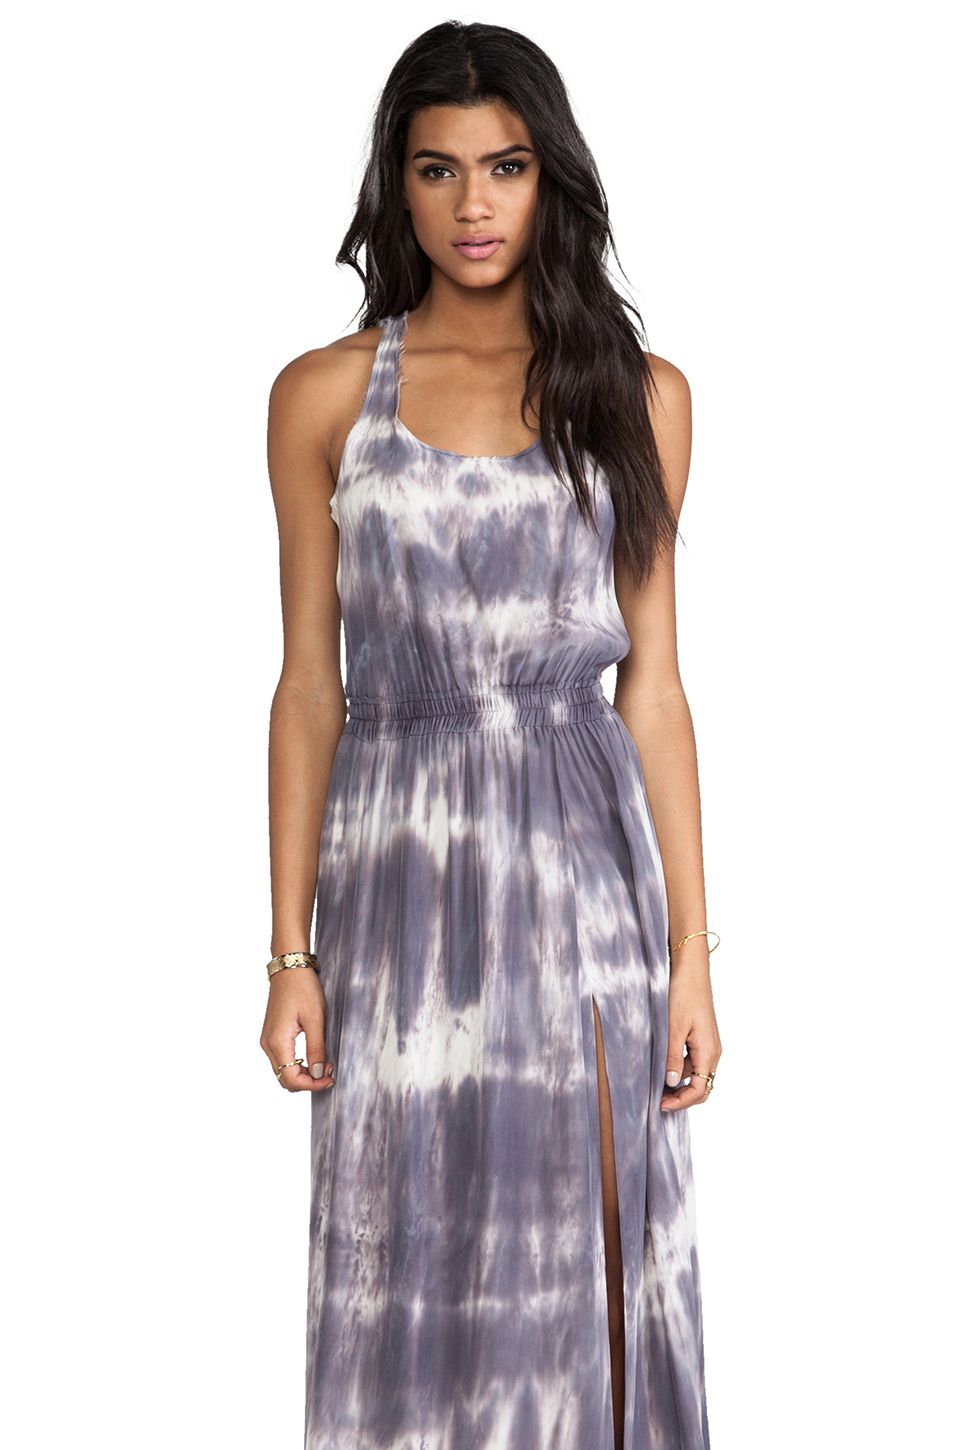 love this maxi dress from revolve clothing and is perfect for spring and summer. i love the lavender! i'm not much of a girly girl but this is so fun, flirty and girly. i just need it in my closet!